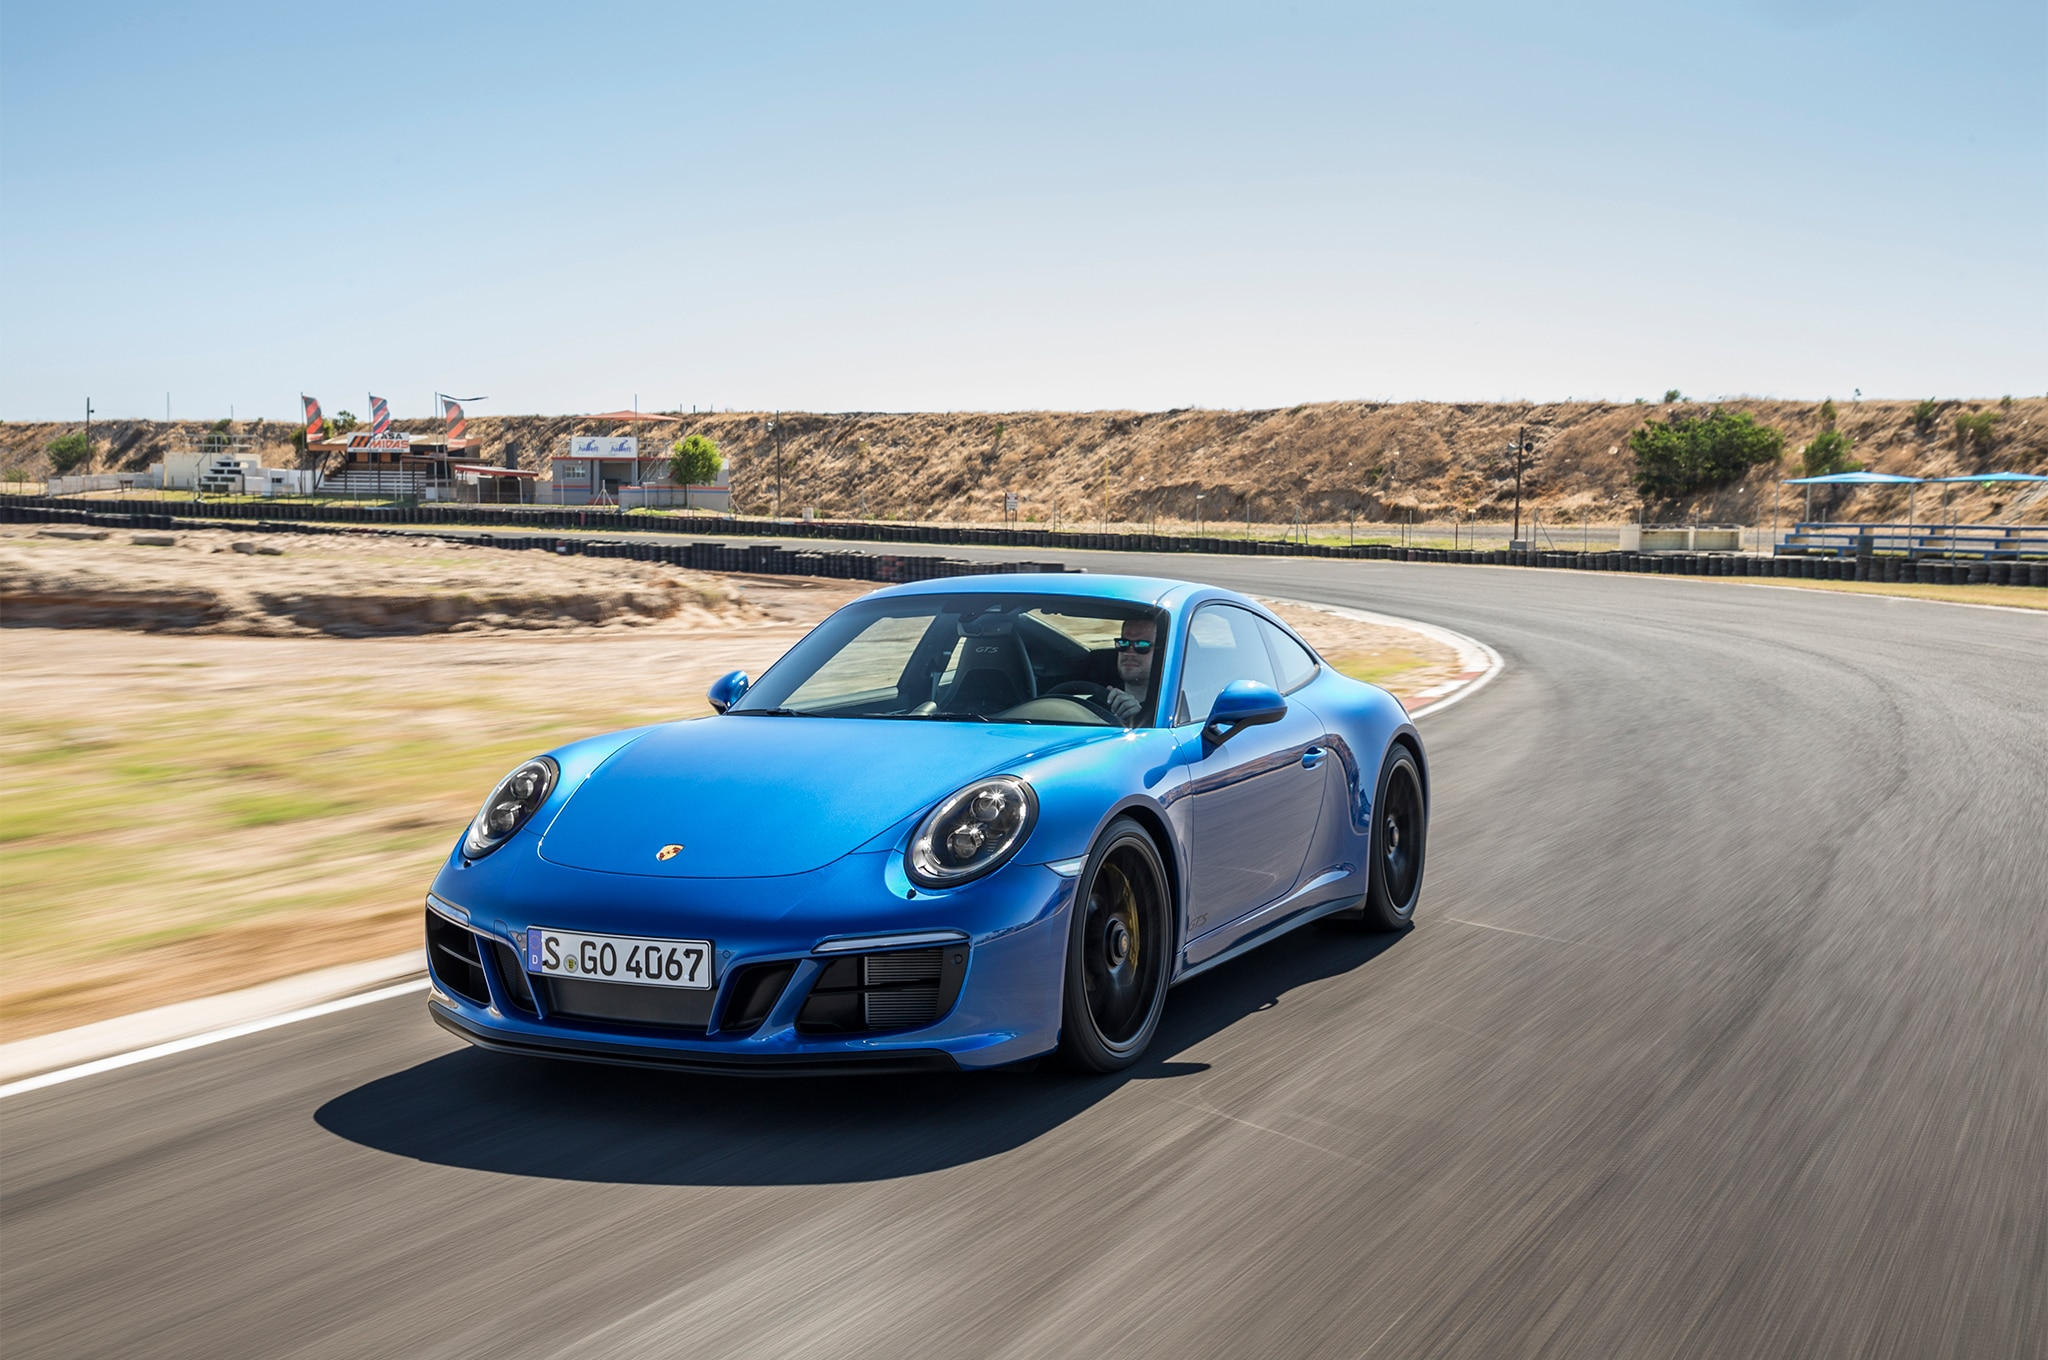 2017 porsche 911 carrera gts first drive review automobile magazine. Black Bedroom Furniture Sets. Home Design Ideas